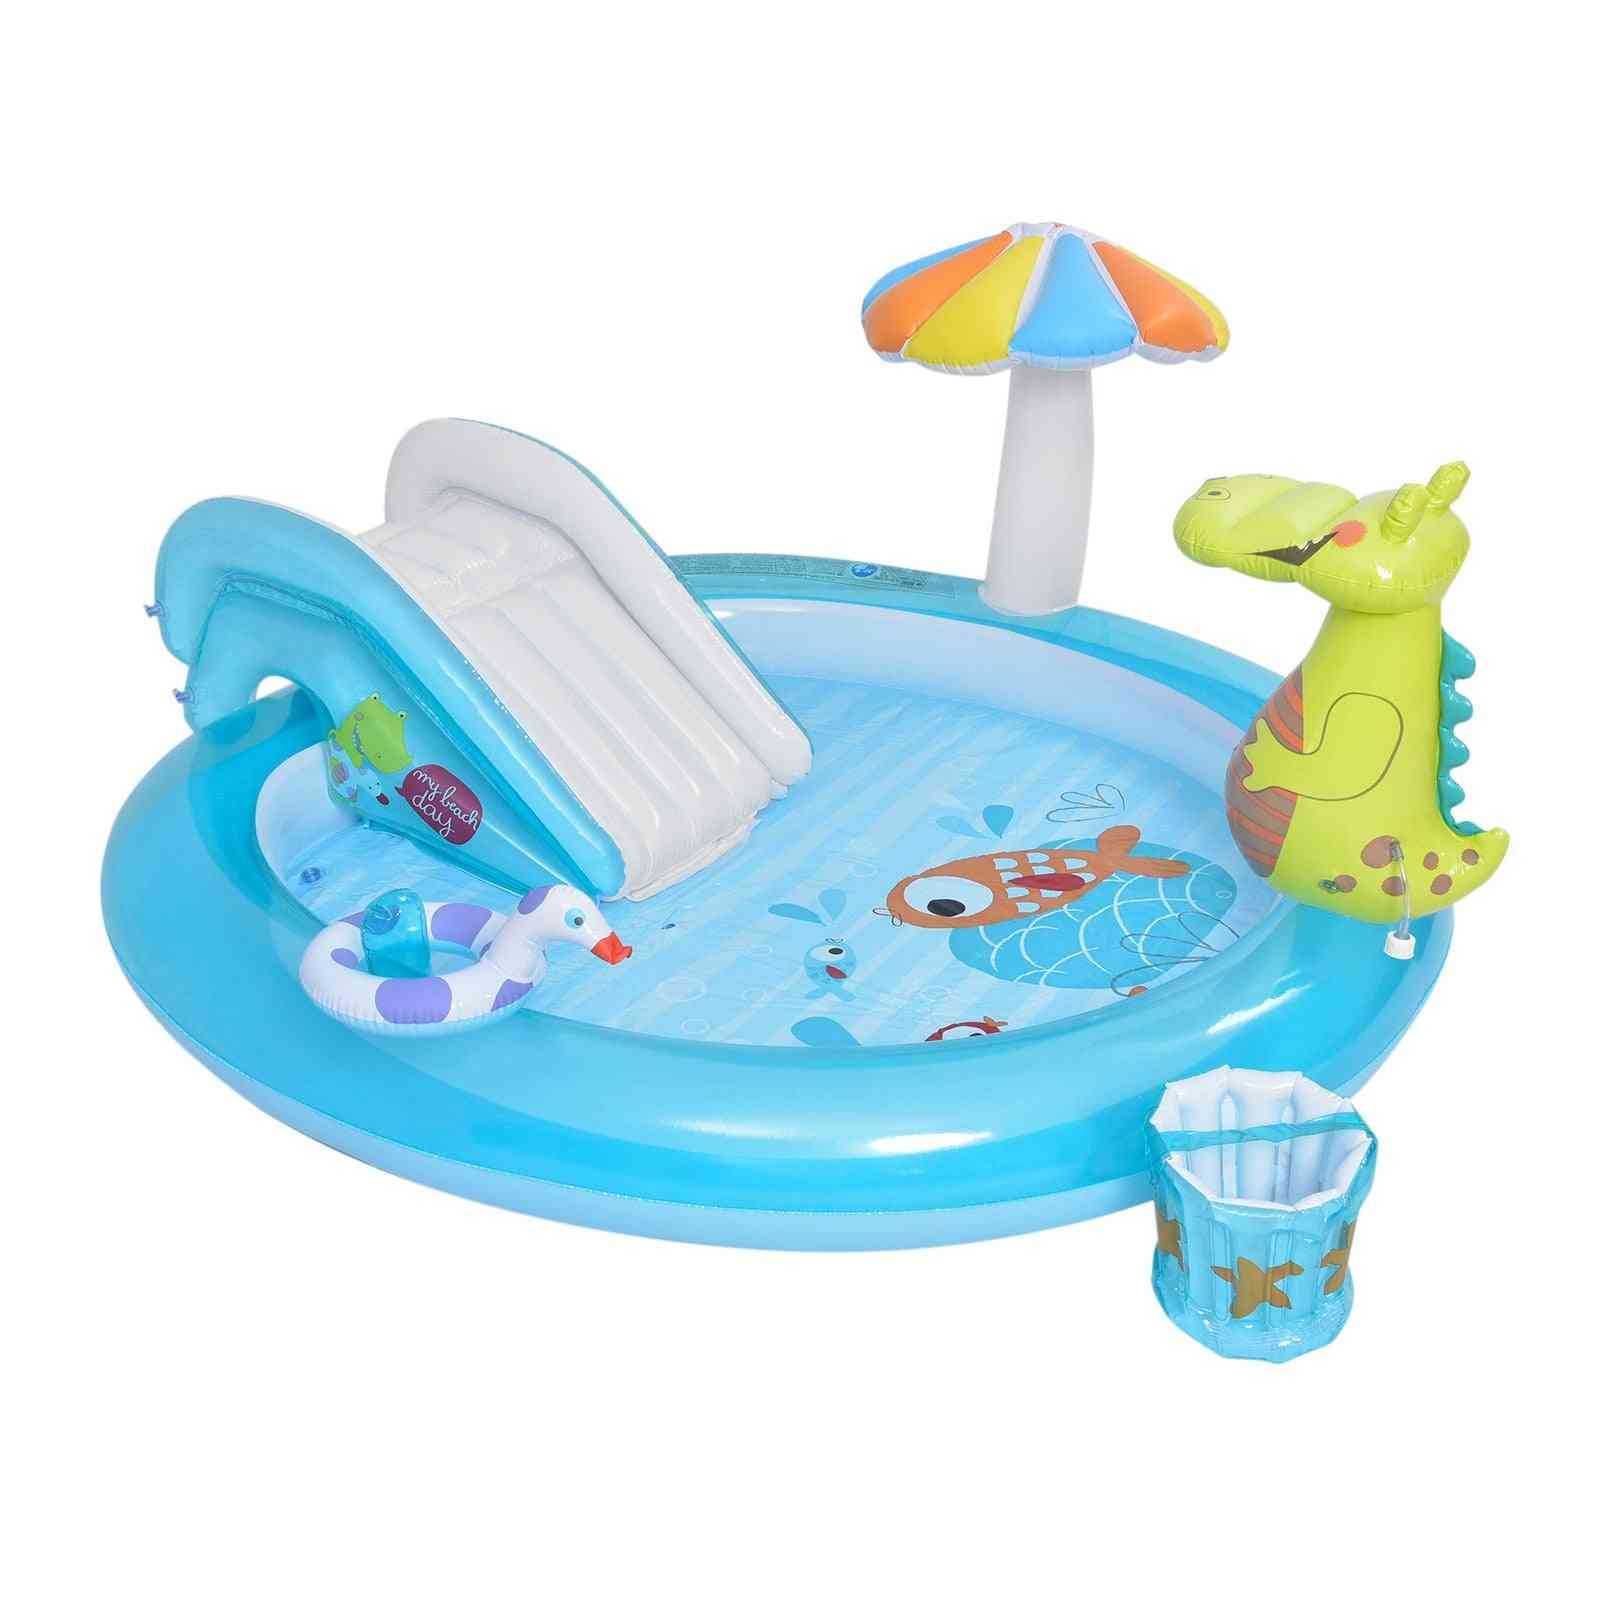 Inflatable Play Center Blow Up Swimming Pool Inflatable Play Center Kids Water Fun Pool